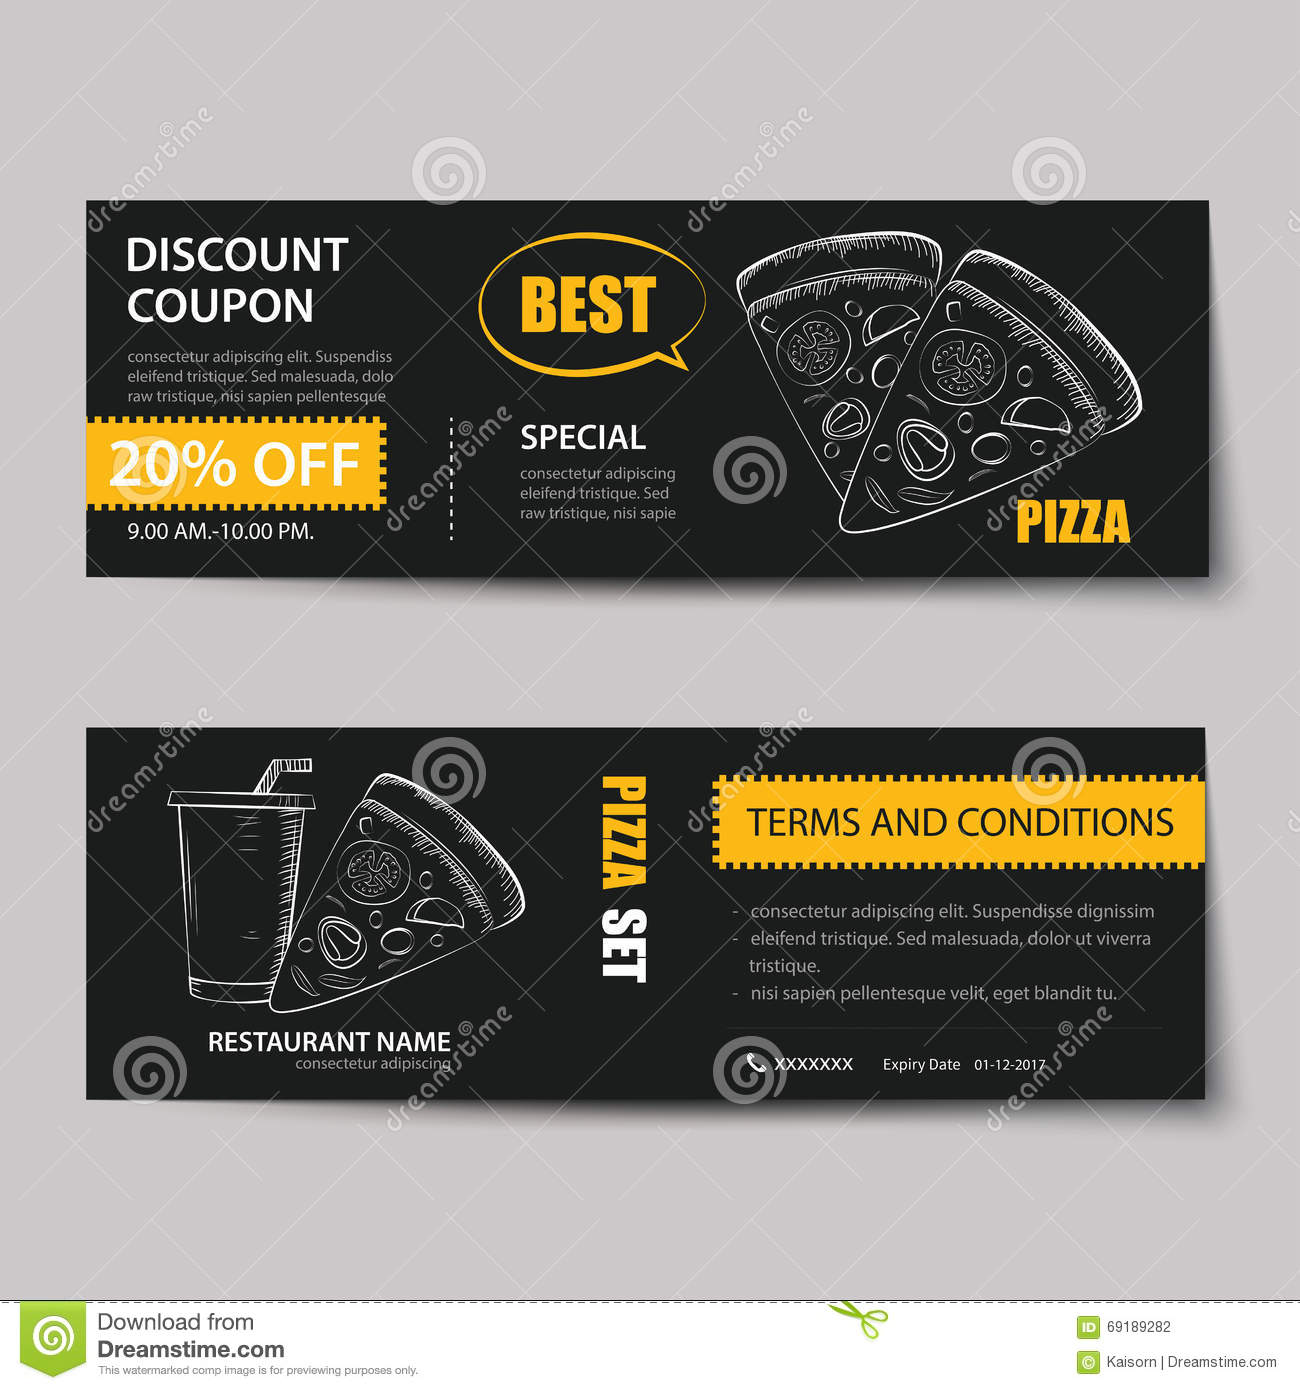 Coupons Design Templates bank reference letter microsoft word – Coupons Design Templates